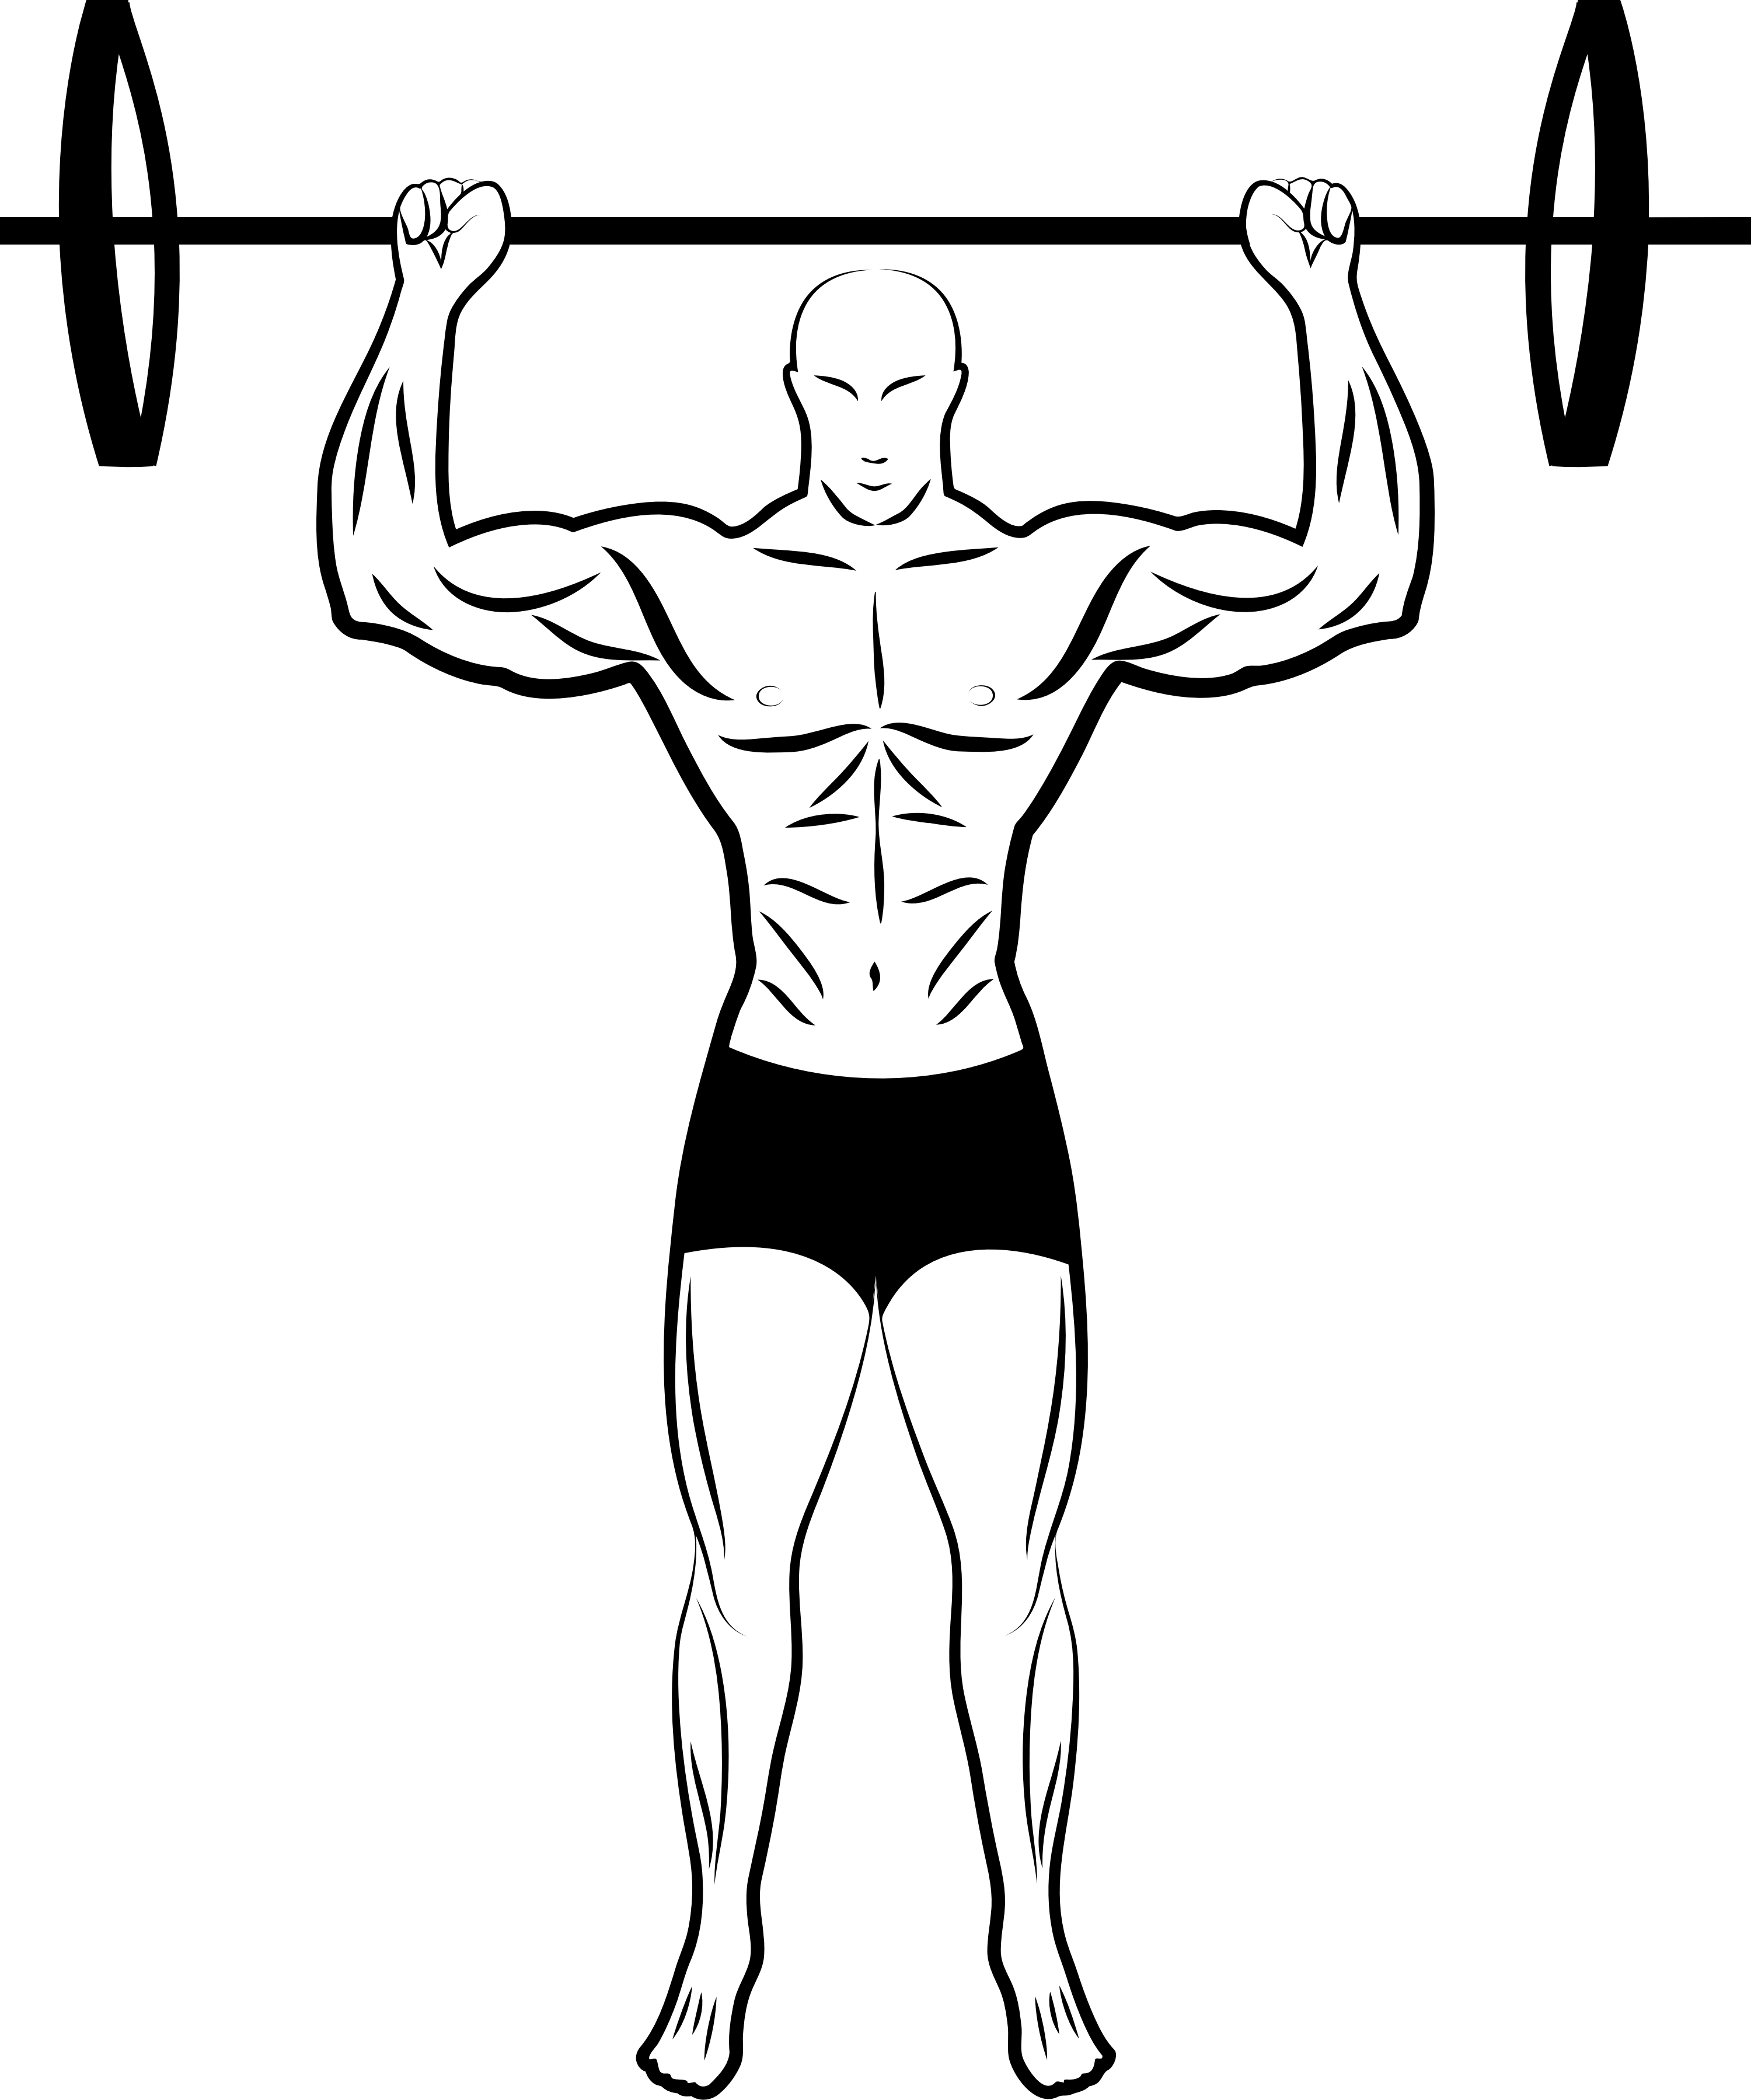 Weight Lifting Drawing at GetDrawings | Free download